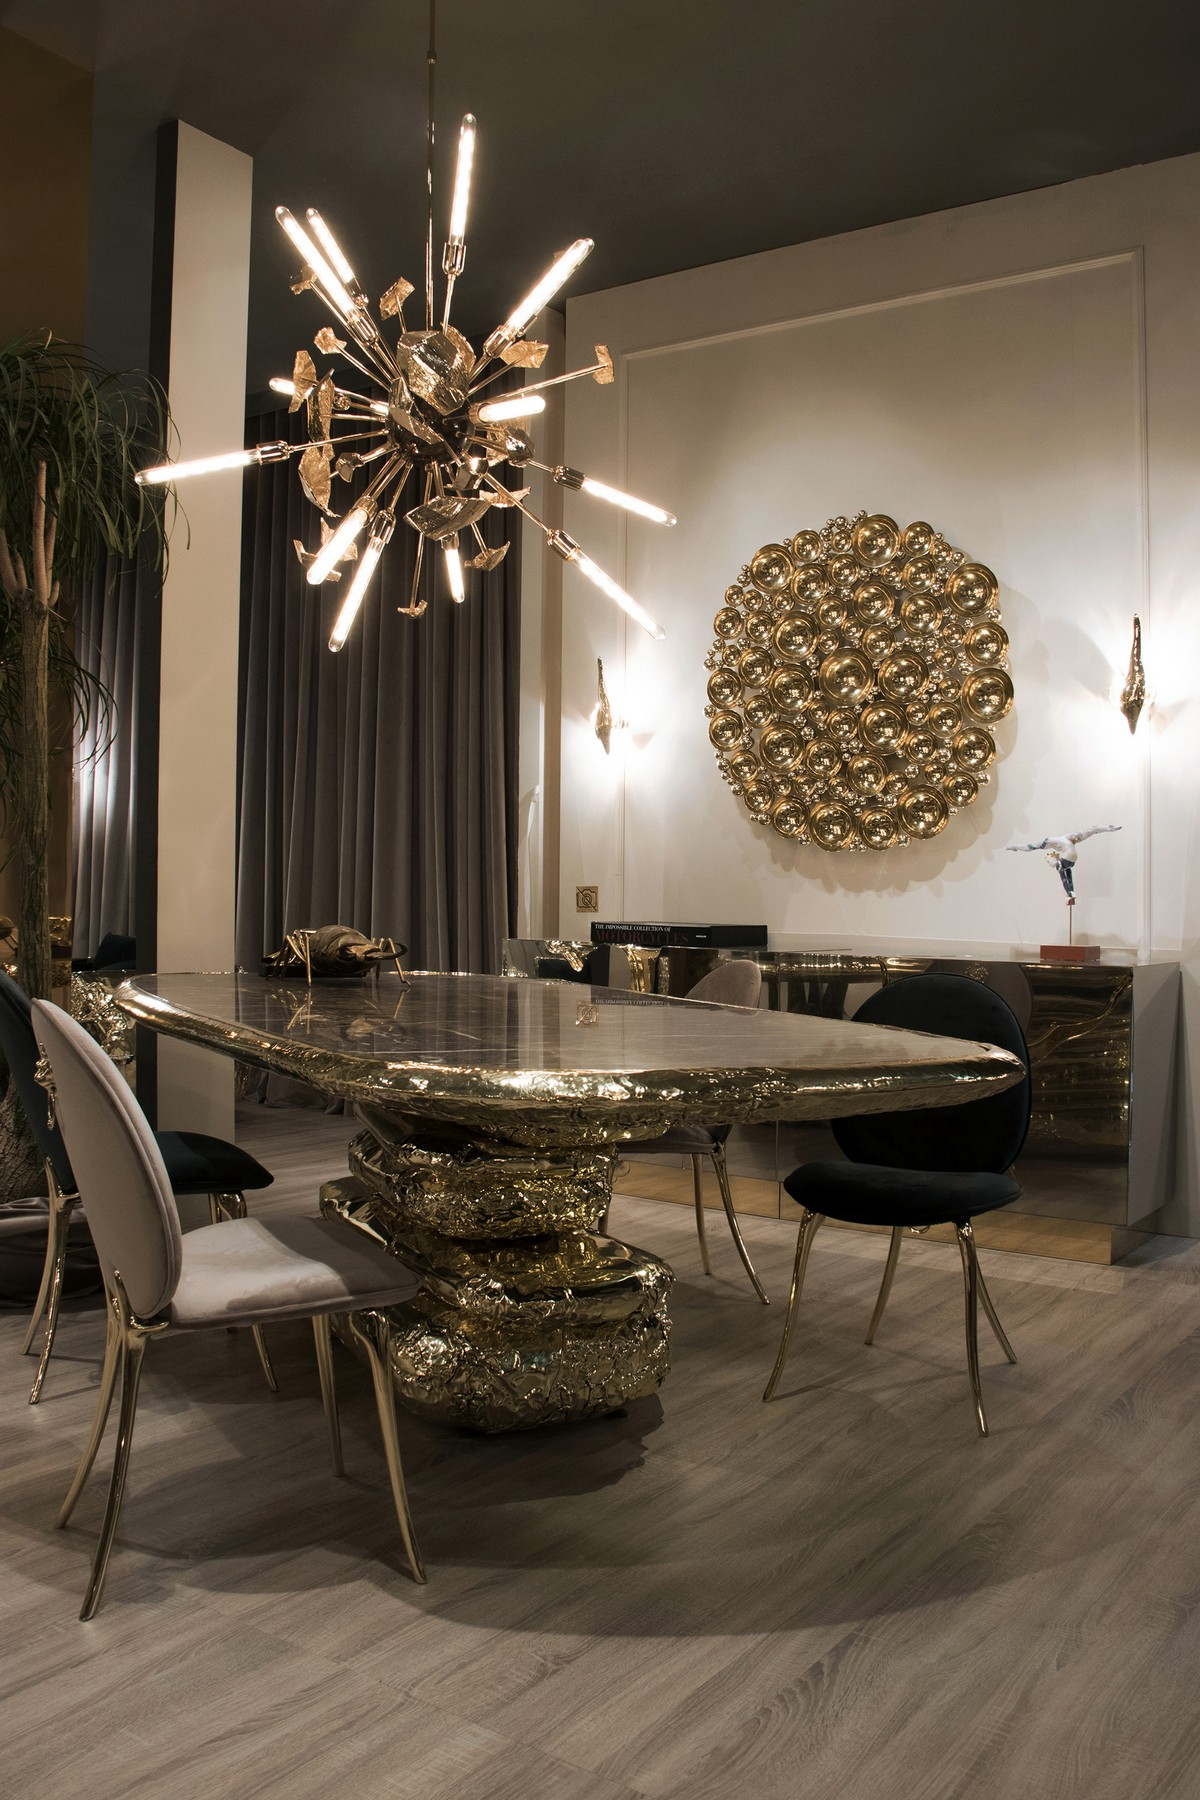 The 5 Most Expensive Dining Tables In The World expensive dining tables The 5 Most Expensive Dining Tables In The World stonehenge expensive dining tables The 5 Most Expensive Dining Tables In The World stonehenge